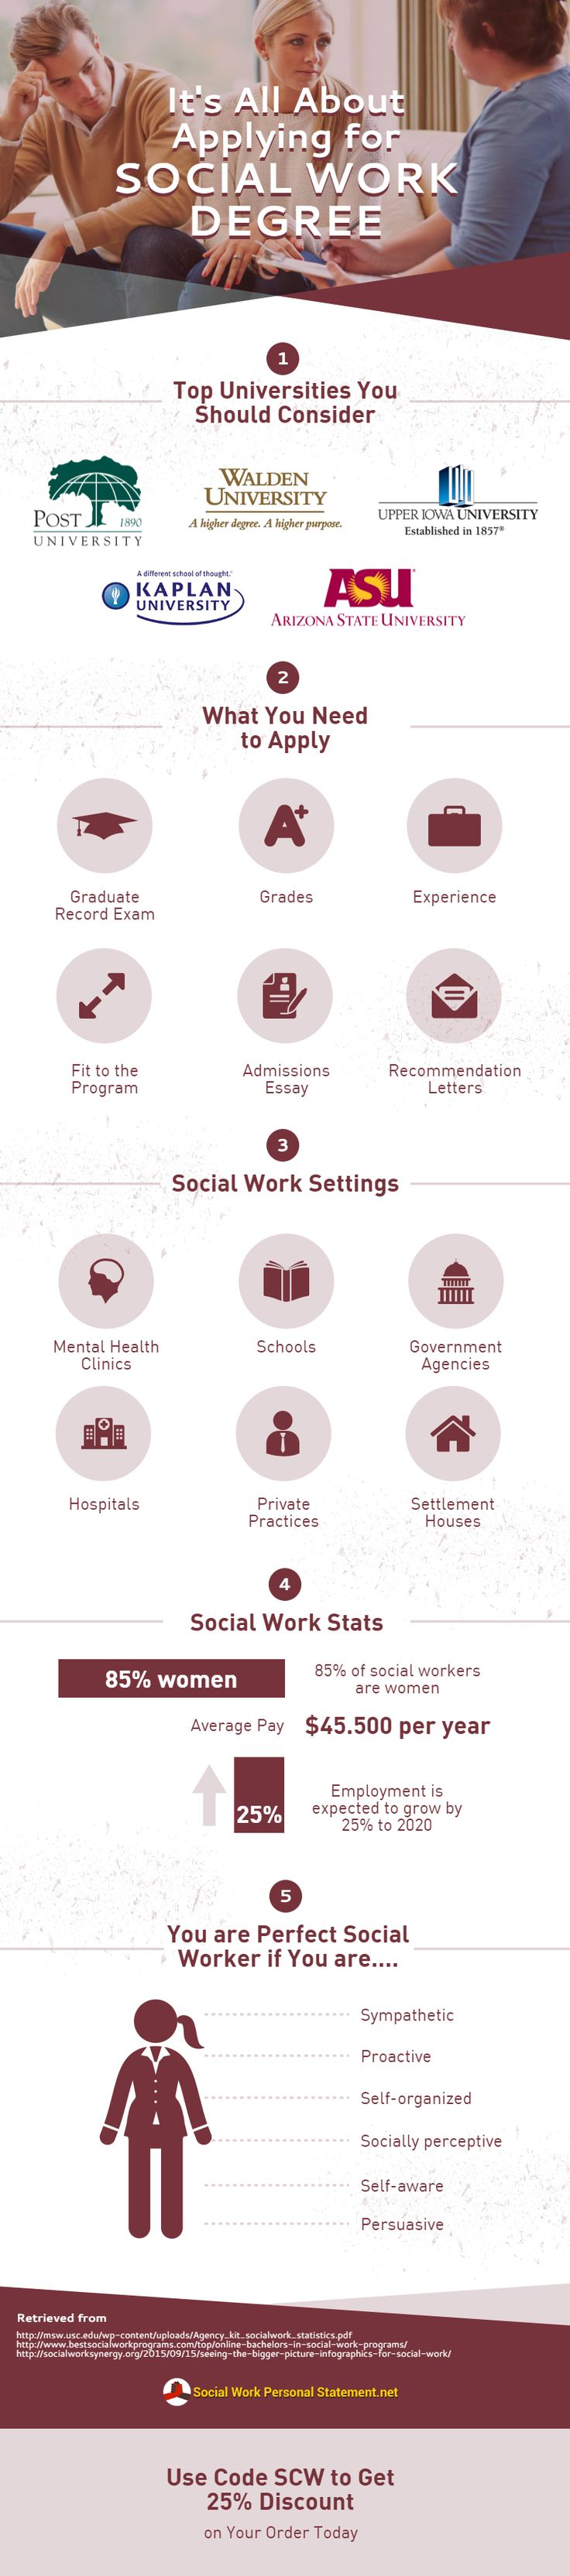 best 25 social work colleges ideas on pinterest social services school interview questions and private school jobs - Why Do You Want To Be A Social Worker